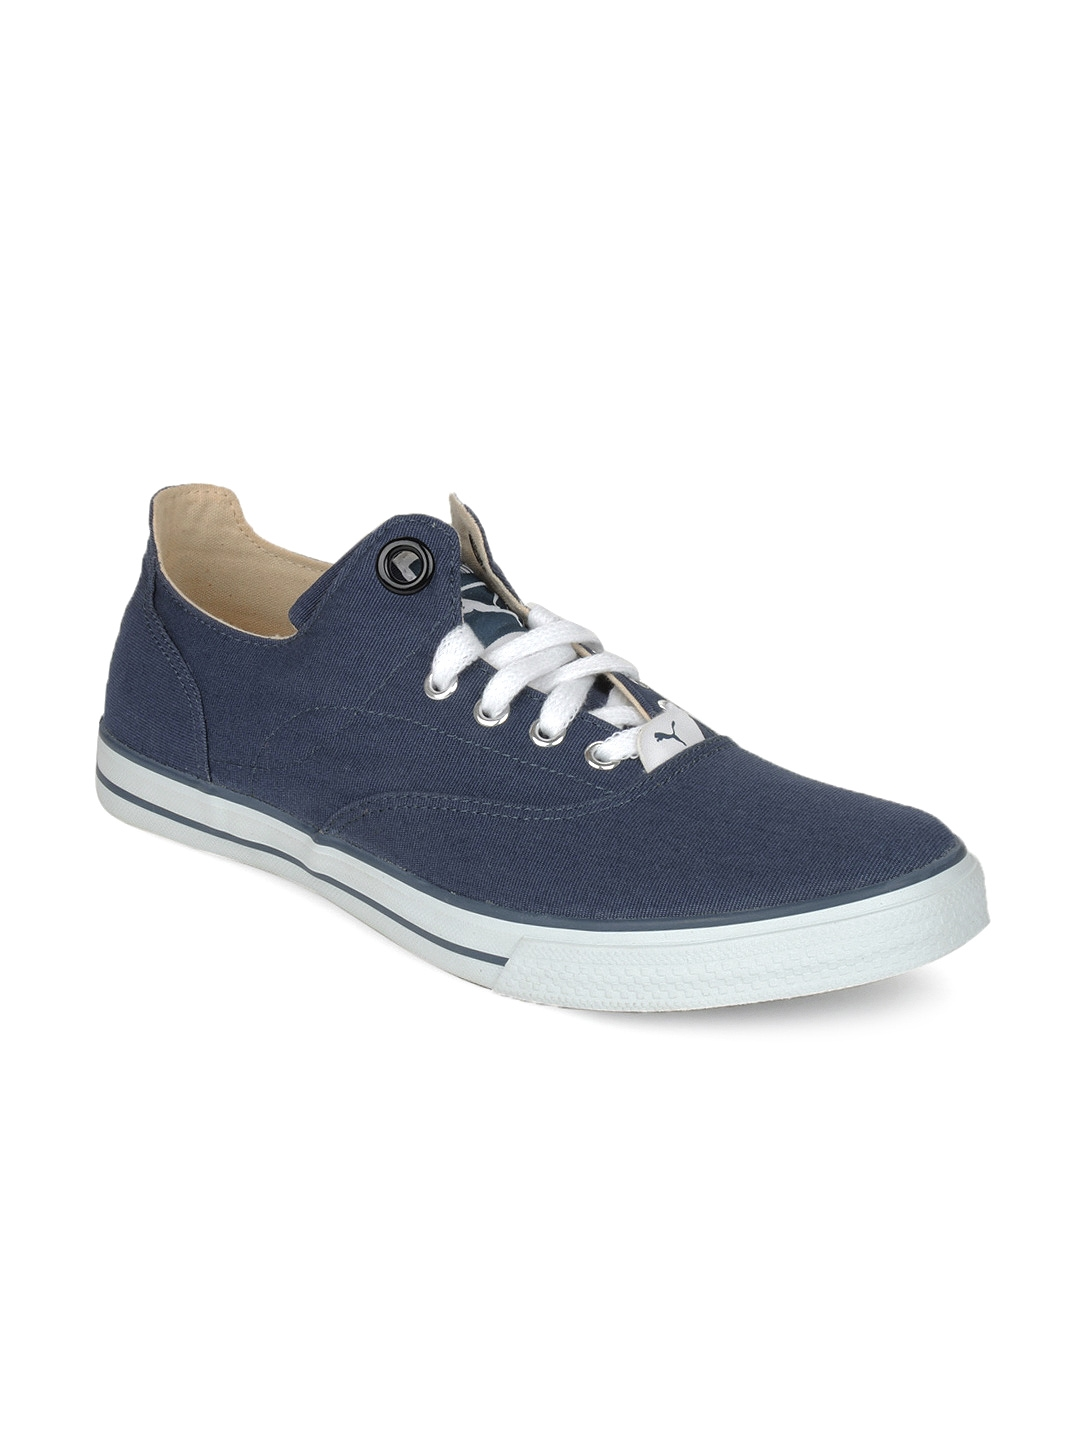 86e529c212b095 Buy Puma Men Blue Limnos III Casual Shoes - Casual Shoes for Men 110878